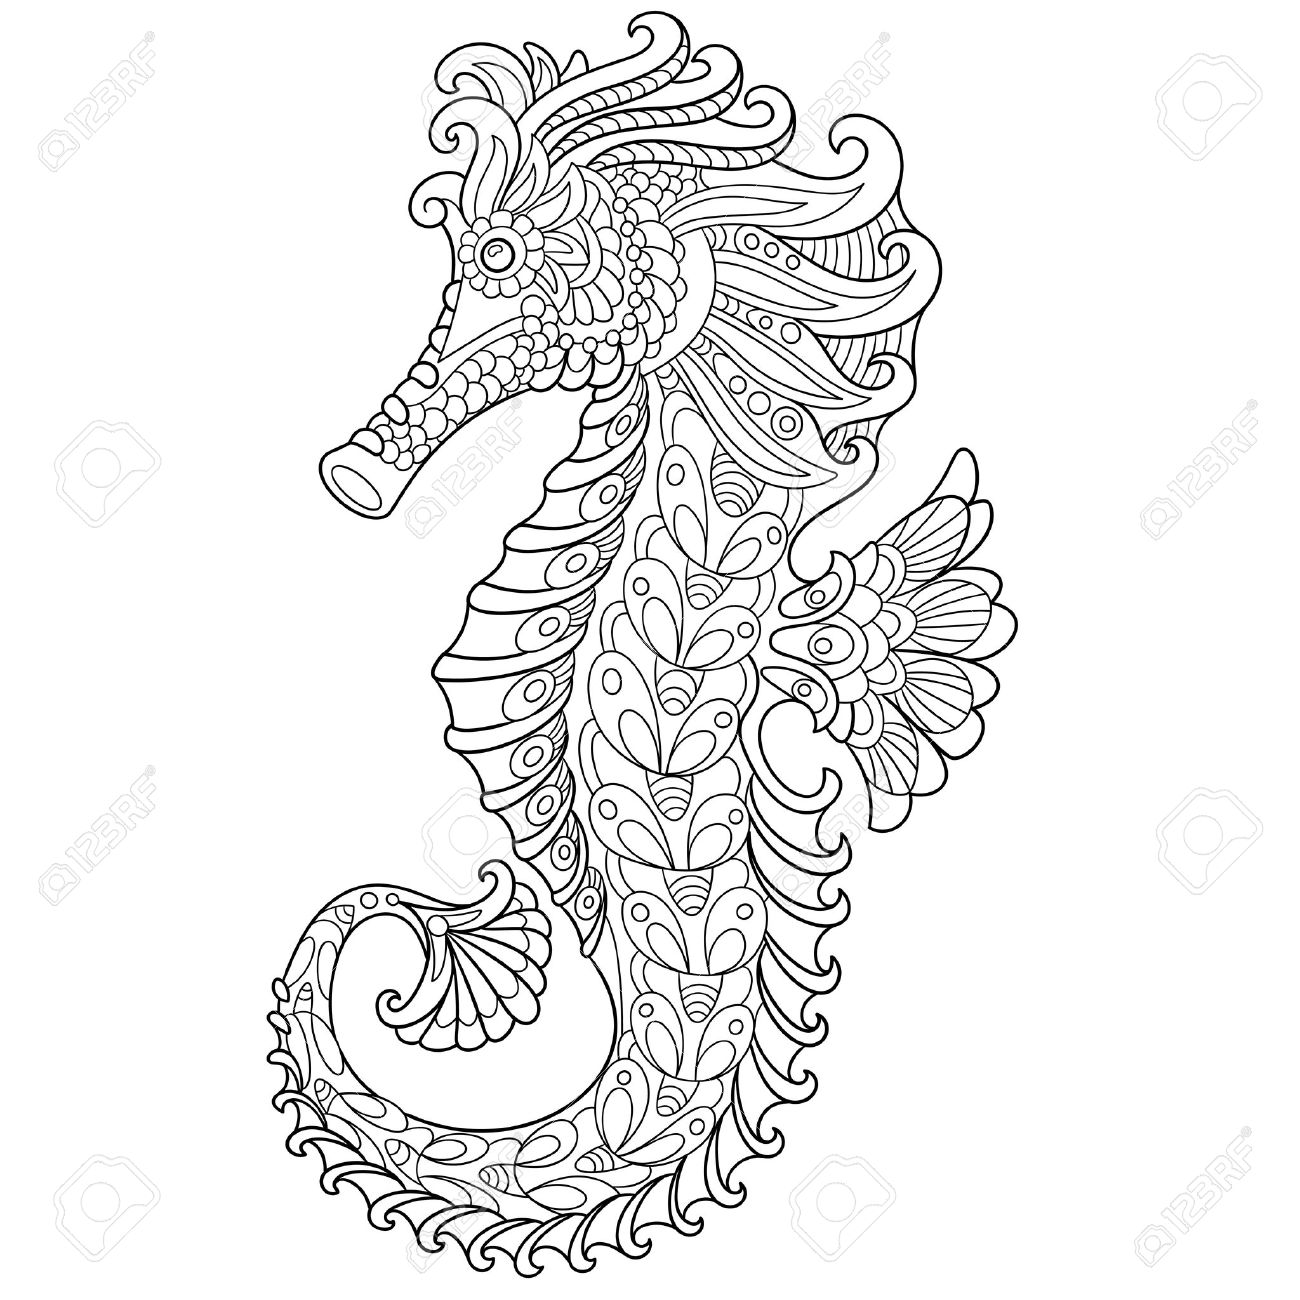 1300x1300 Cartoon Seahorse, Isolated On White Background. Hand Drawn Sketch